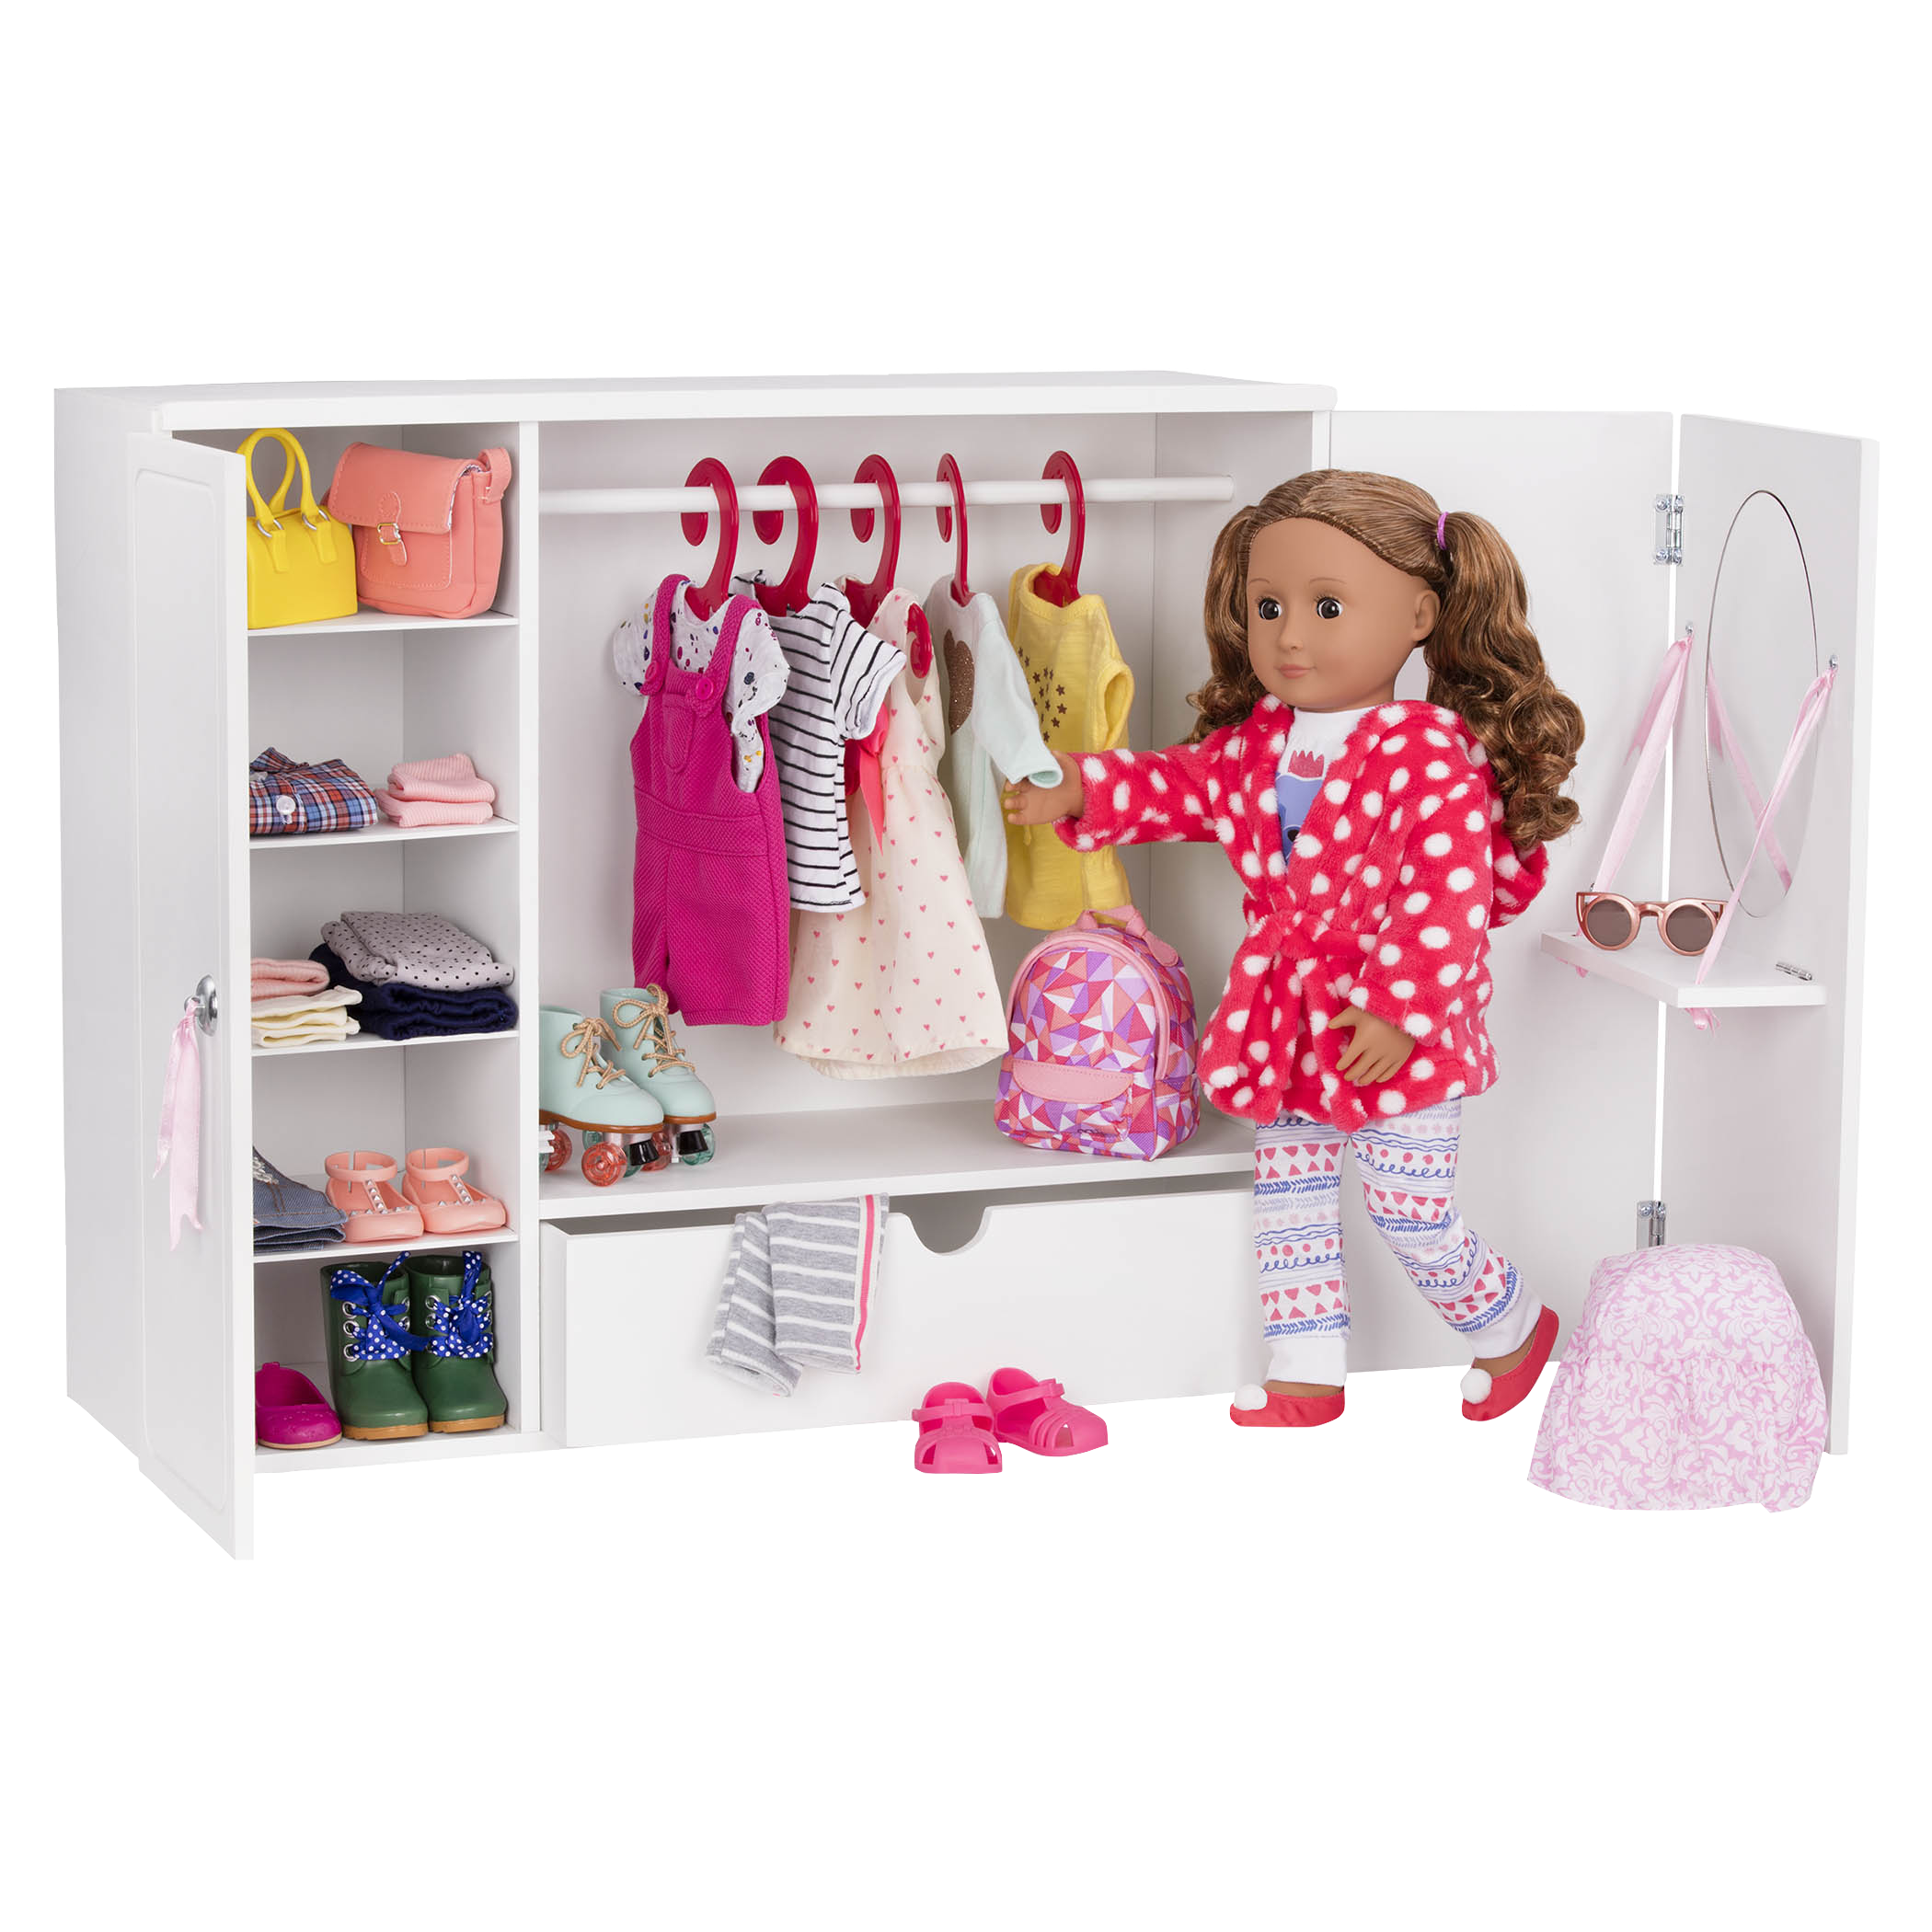 Isa and clothing inside the Wooden Wardrobe Closet for 18-inch Dolls